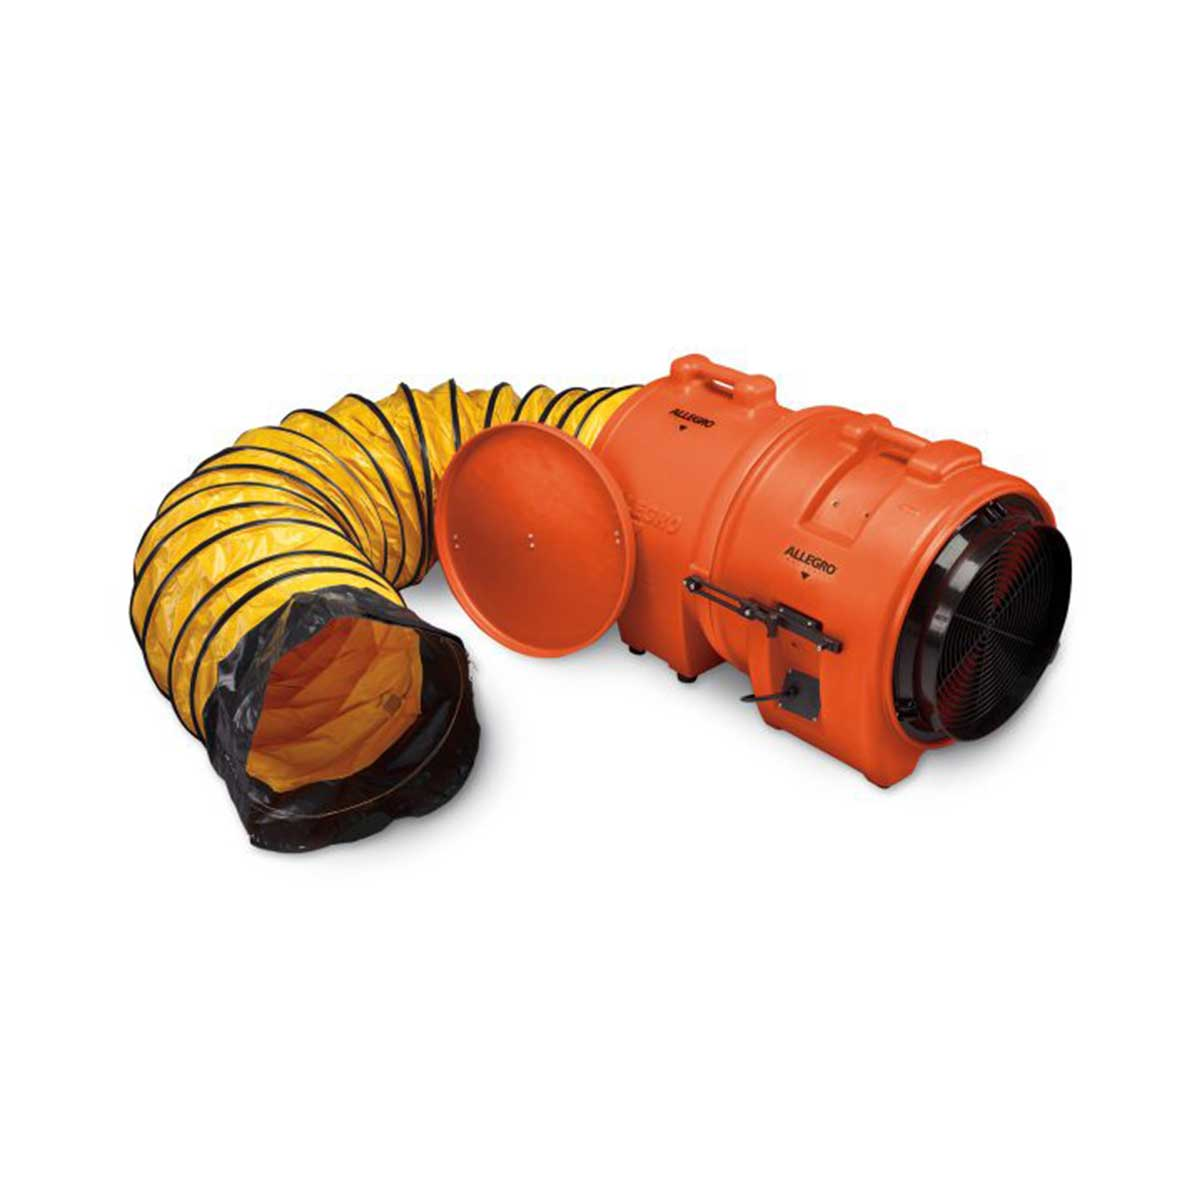 16″ Axial DC Plastic Blower w/ Canister & 15′ Ducting, 12V. Part: ALL-9556-15. Pkg: 1